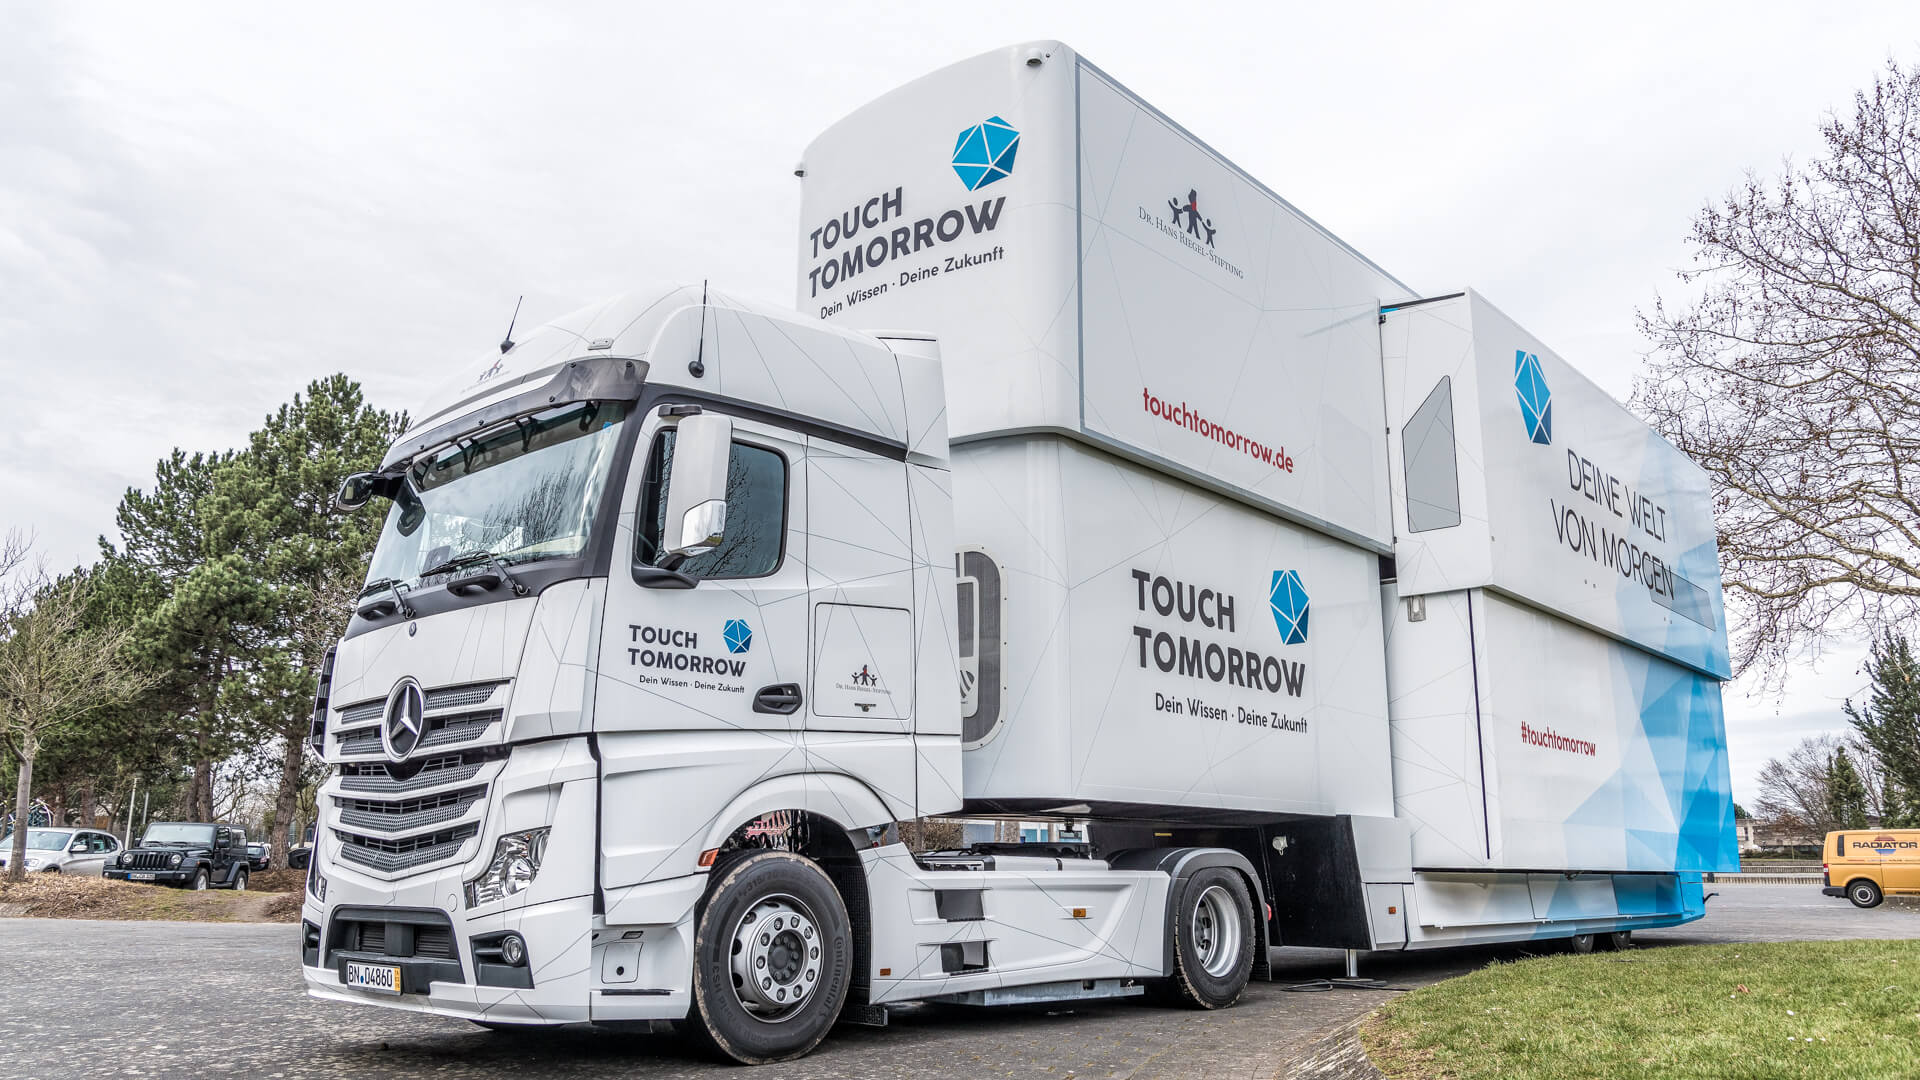 TouchTomorrow-Truck-mobile-Bildungsstaette